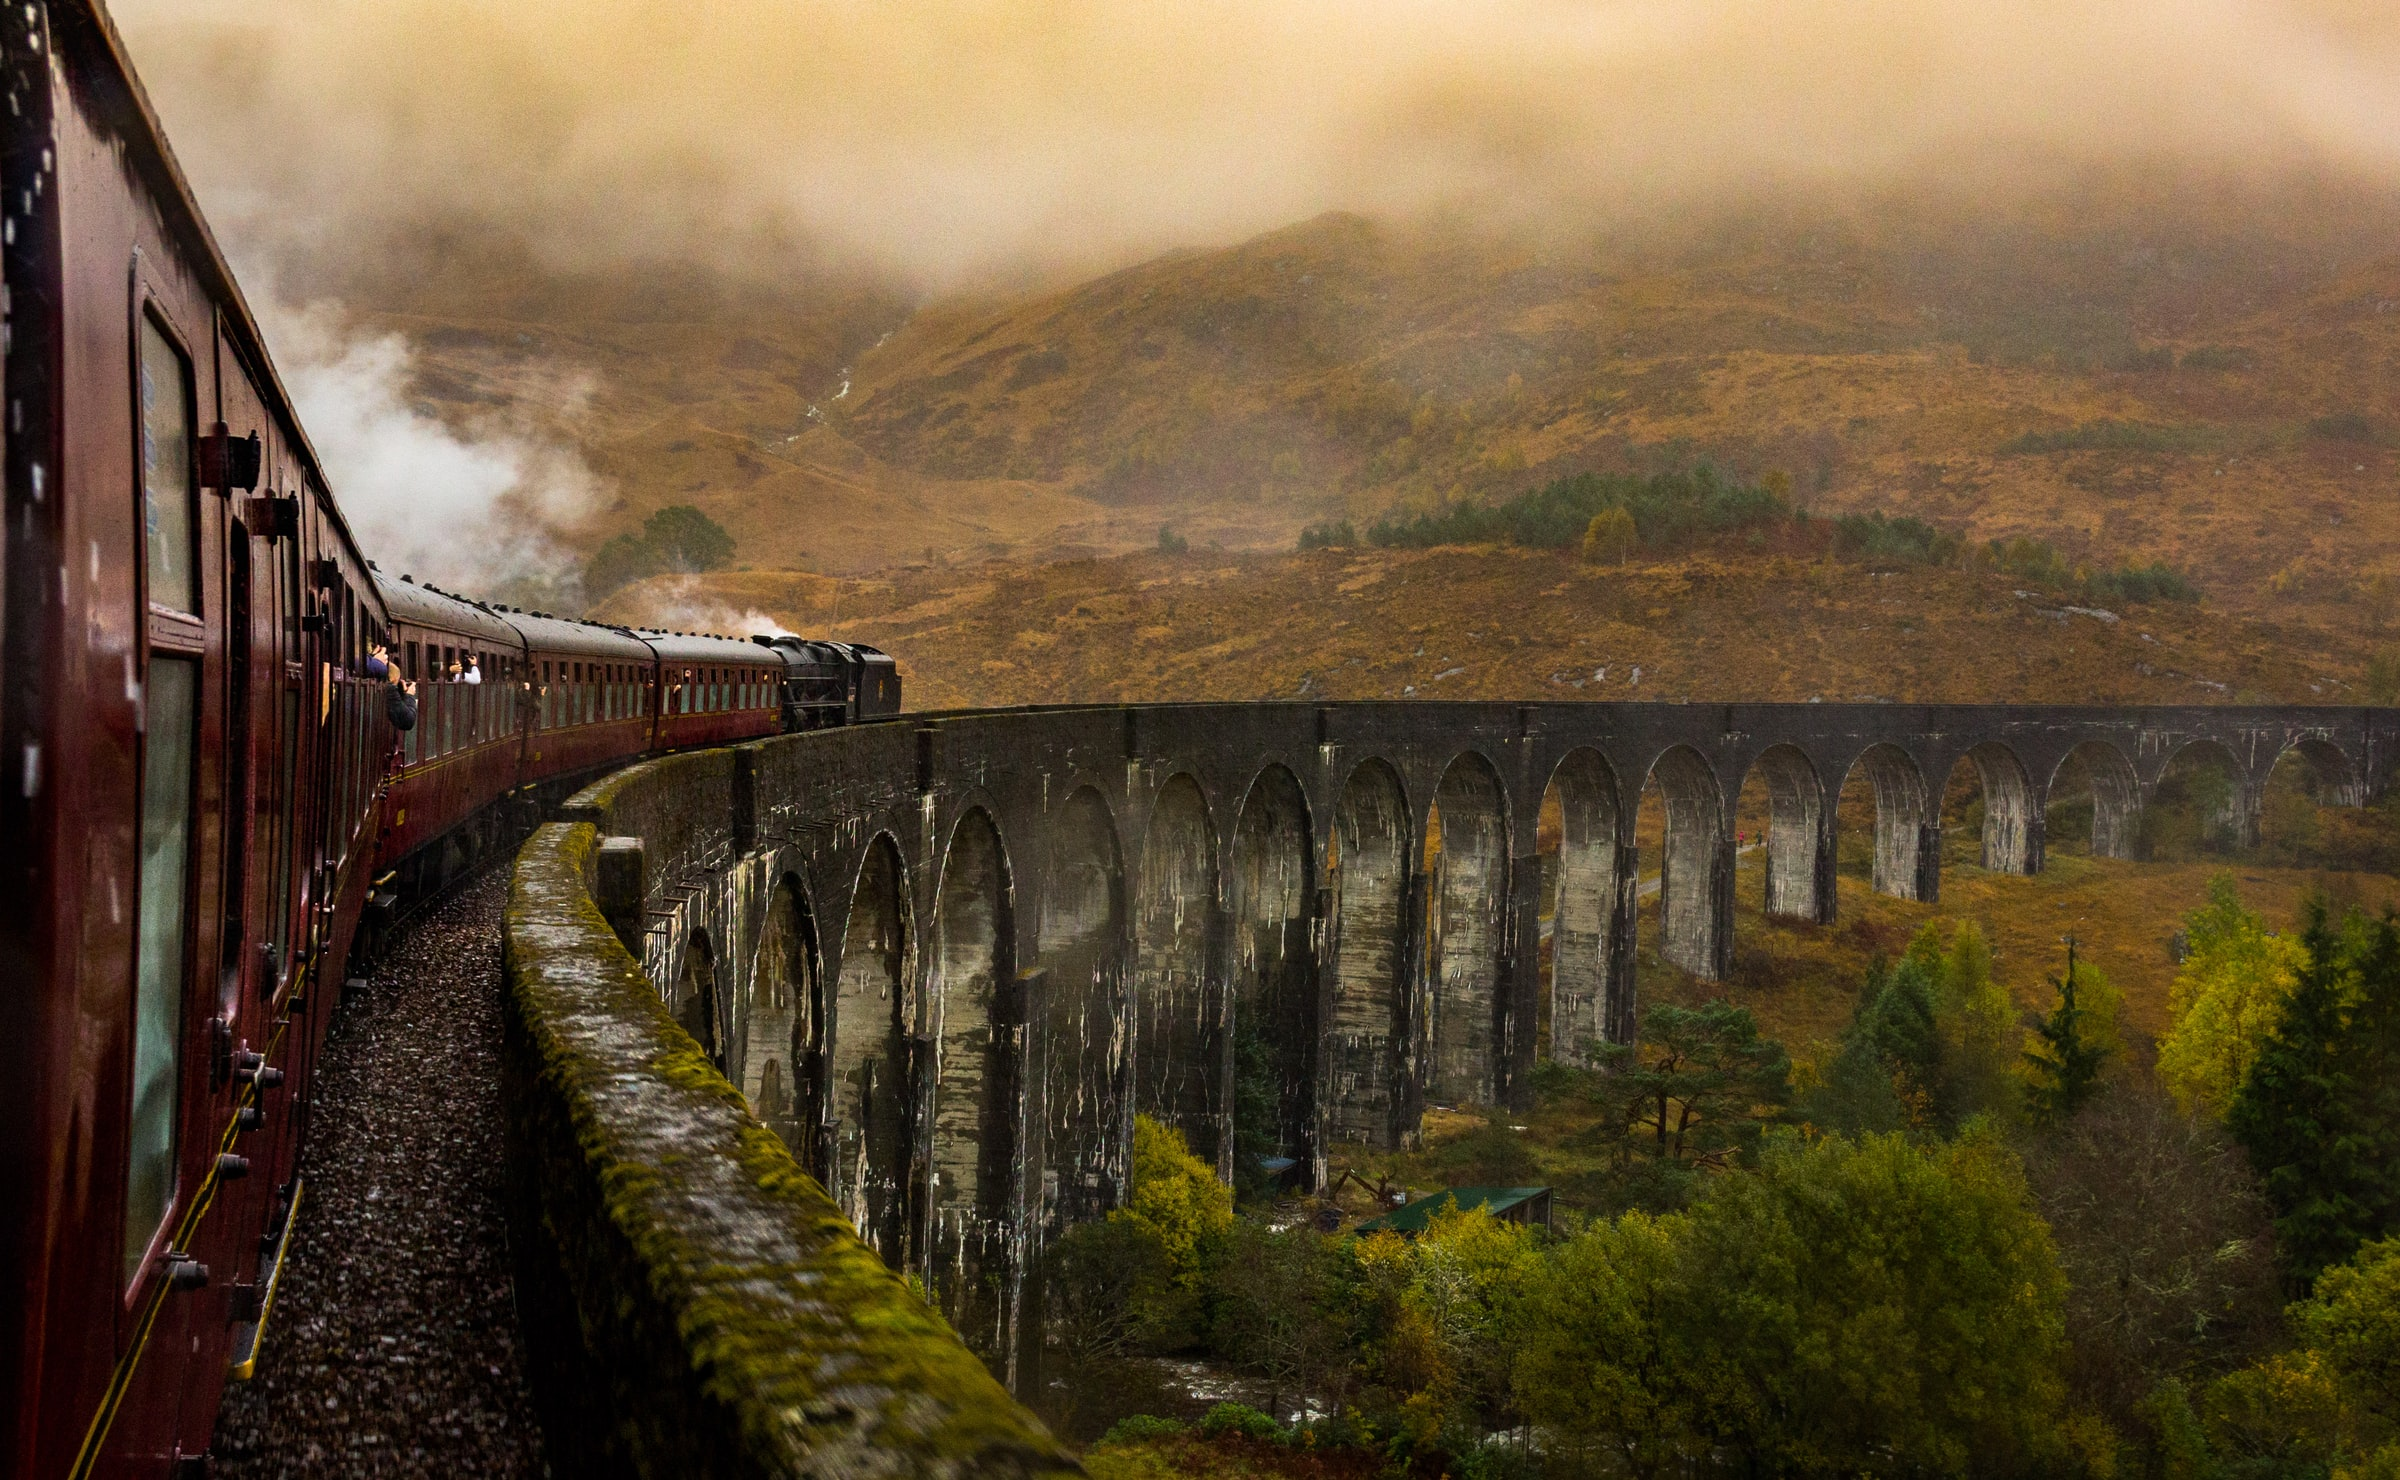 Harry Potter - Jacobite Steam Train